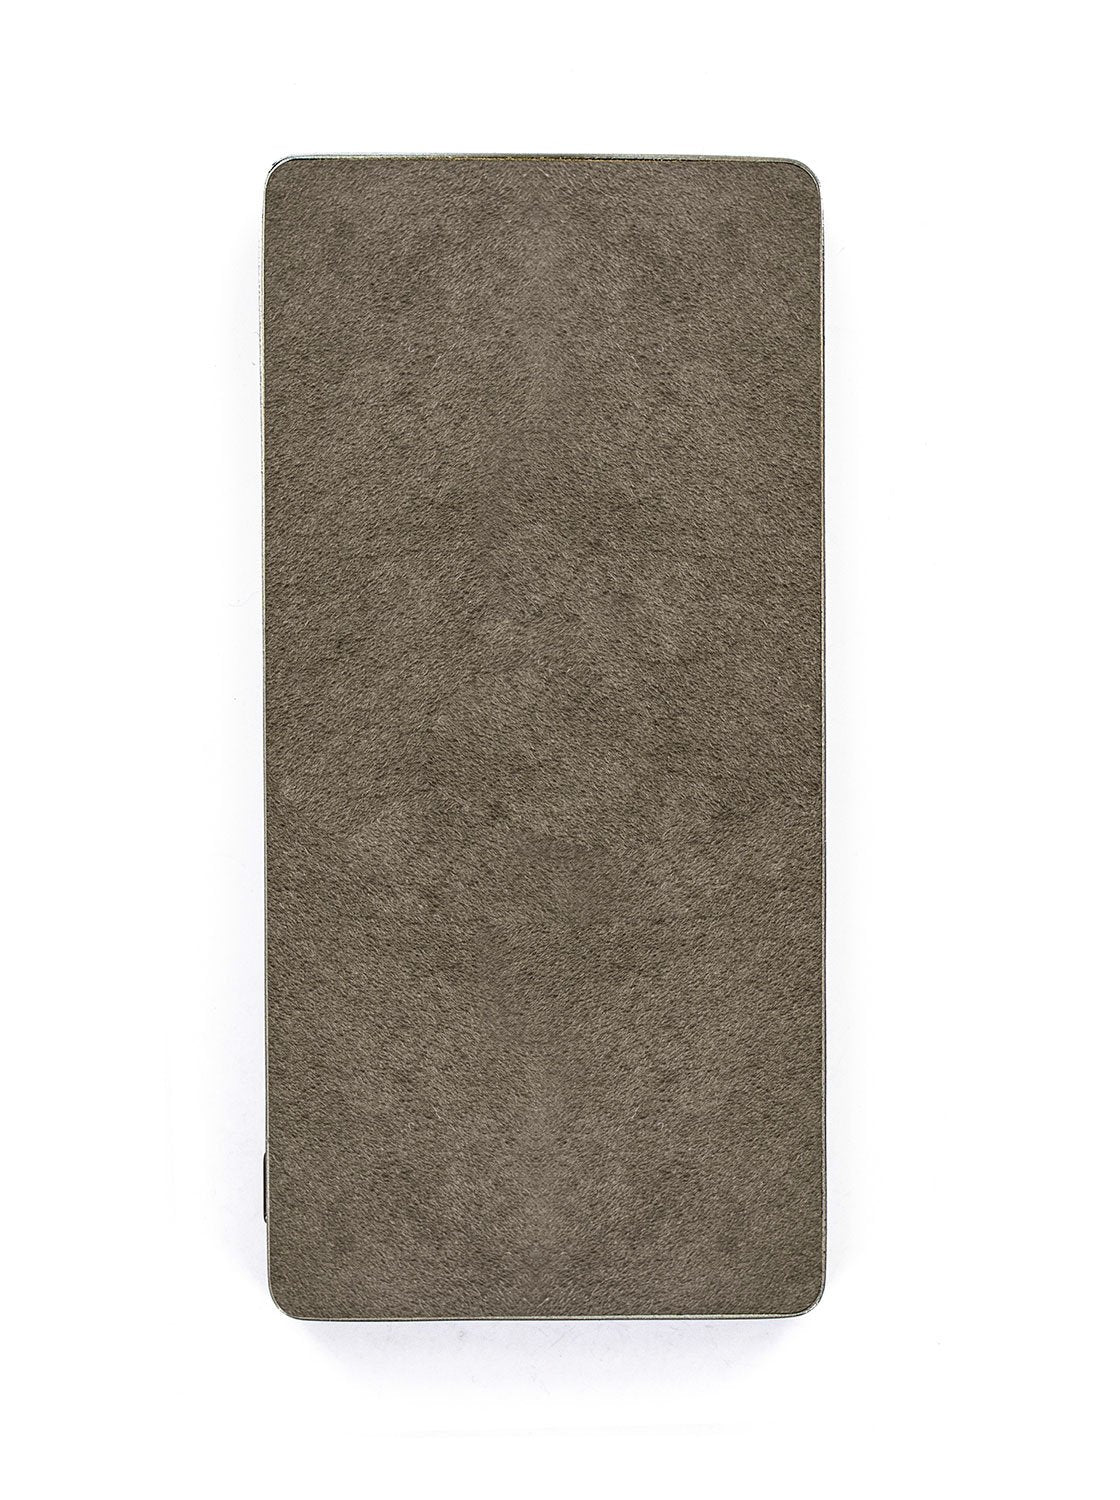 Back image of the Ted Baker Universal power bank in Brown